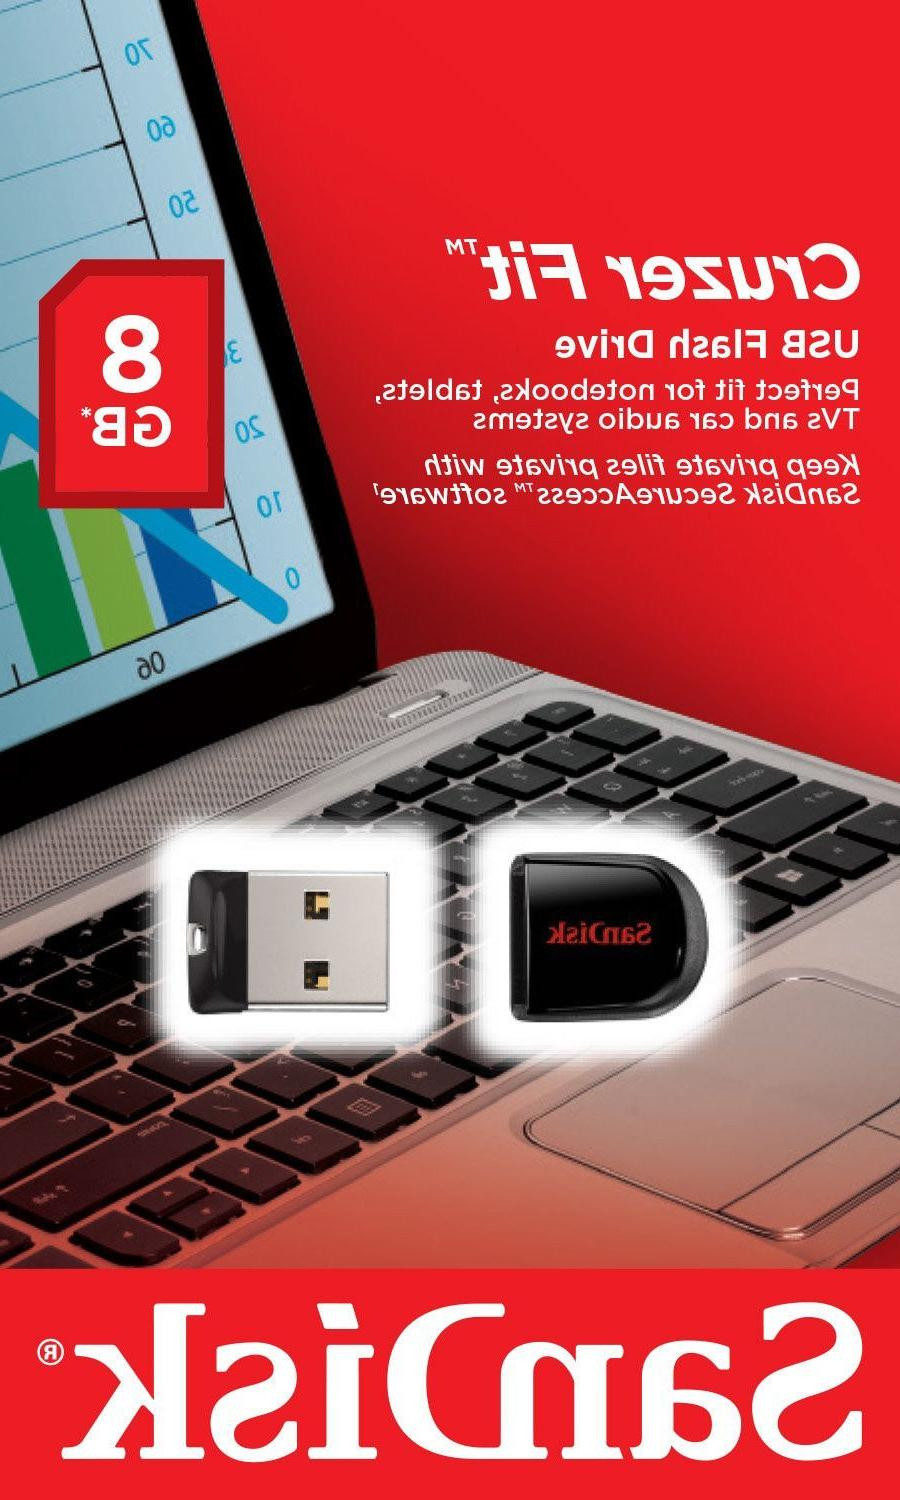 8gb Cruzer Fit Flash Drive Usb 3x5 Inches Non-Retail Packagi